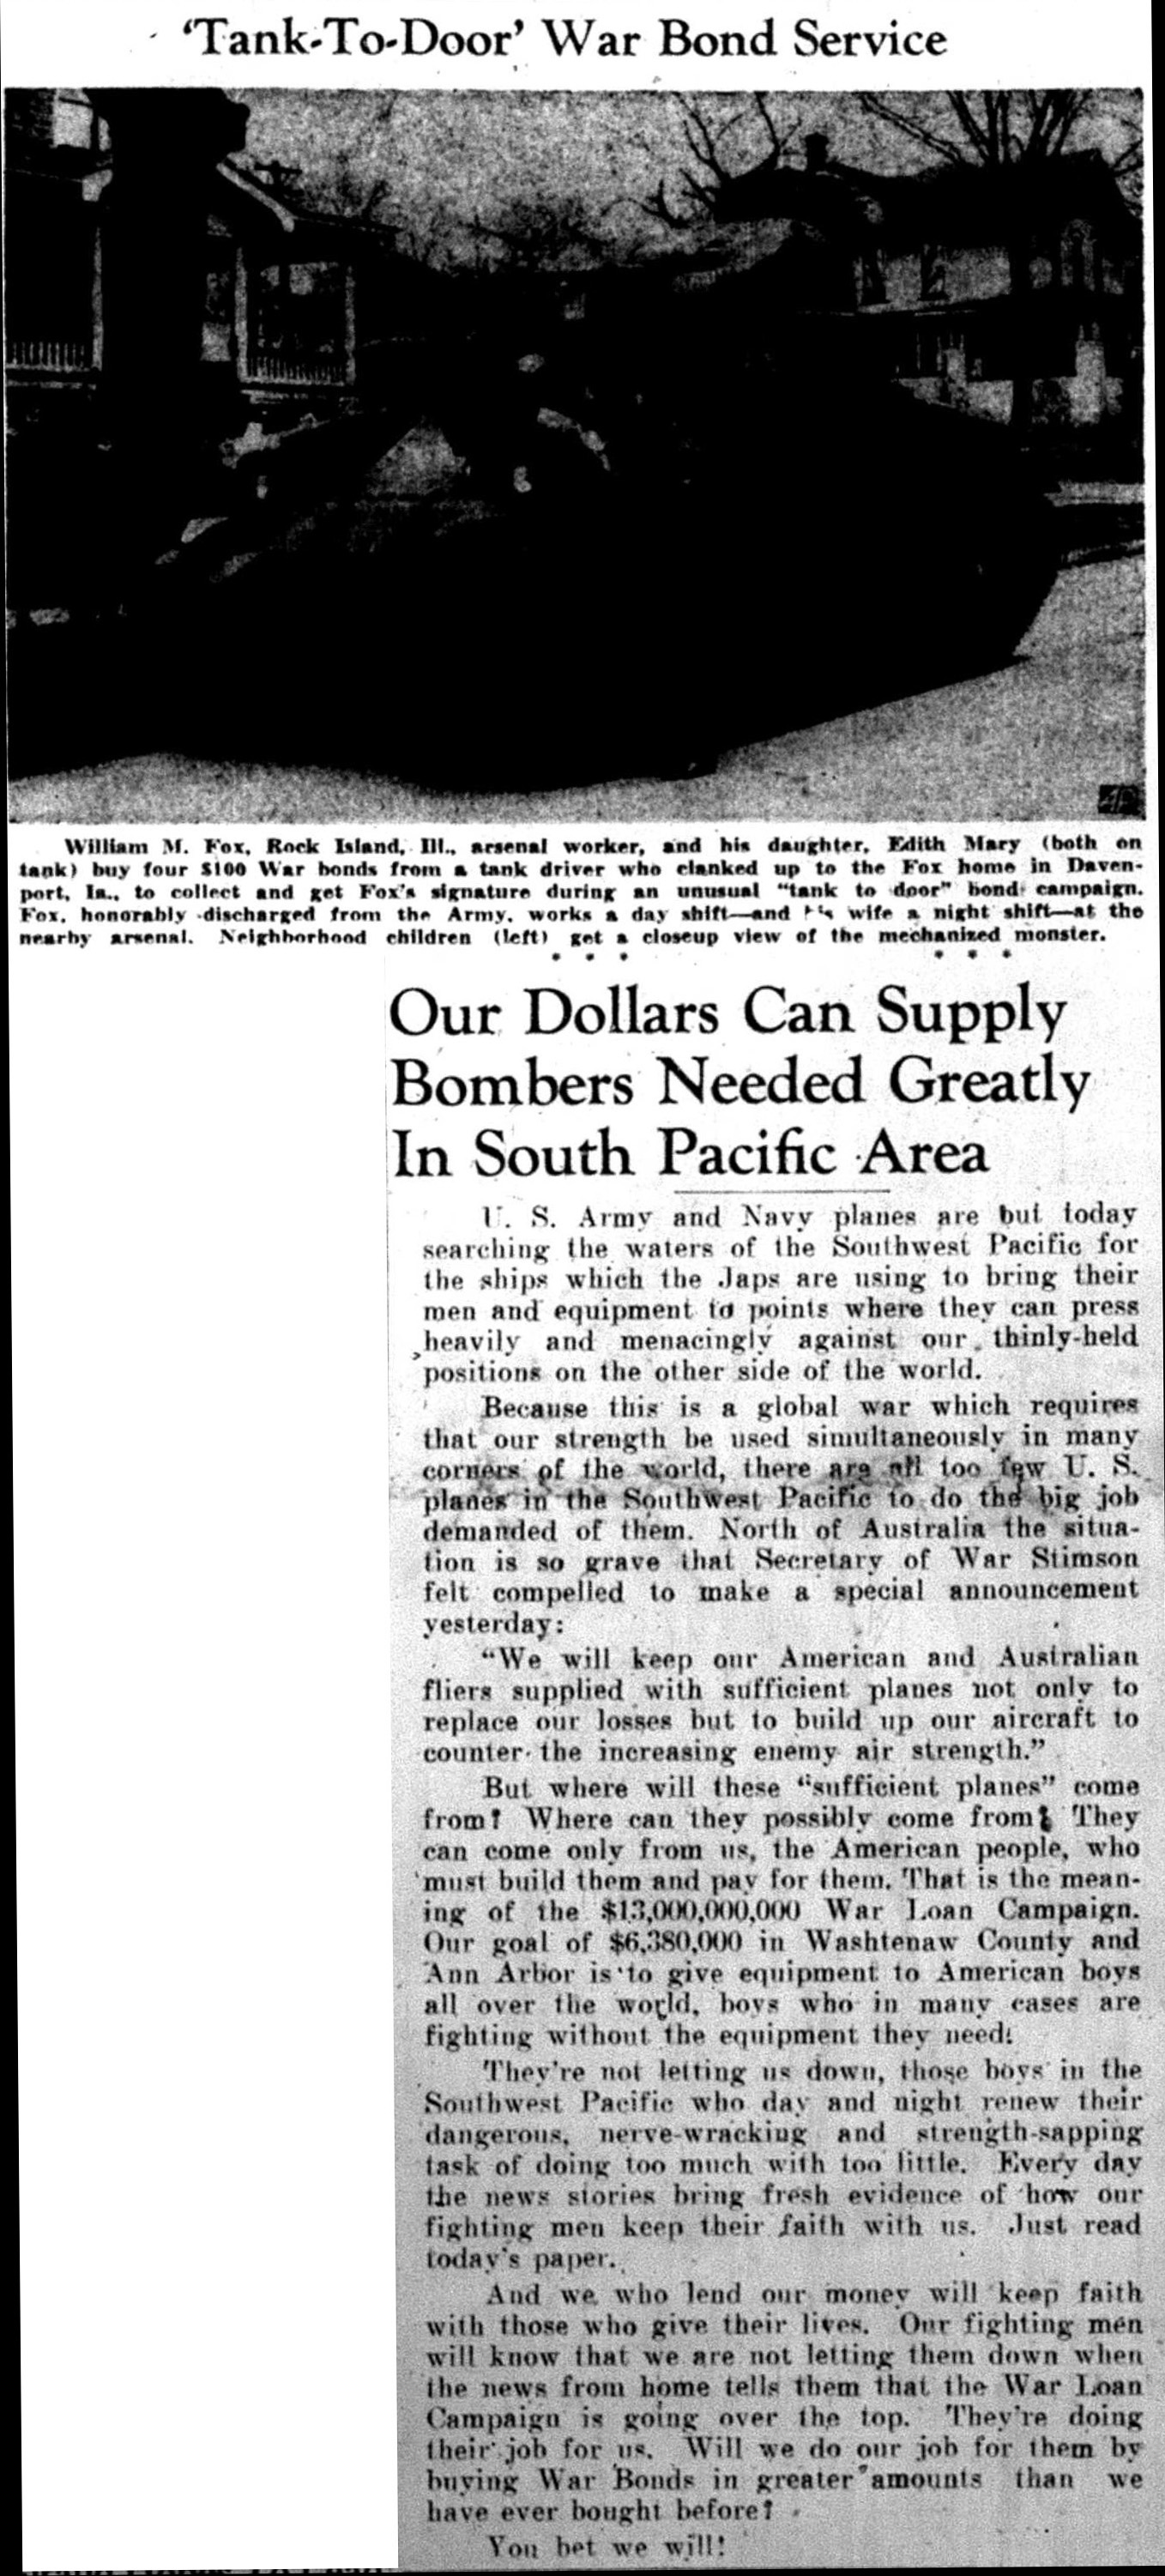 Our Dollars Can Supply Bombers Needed Greatly In South Pacific Area image